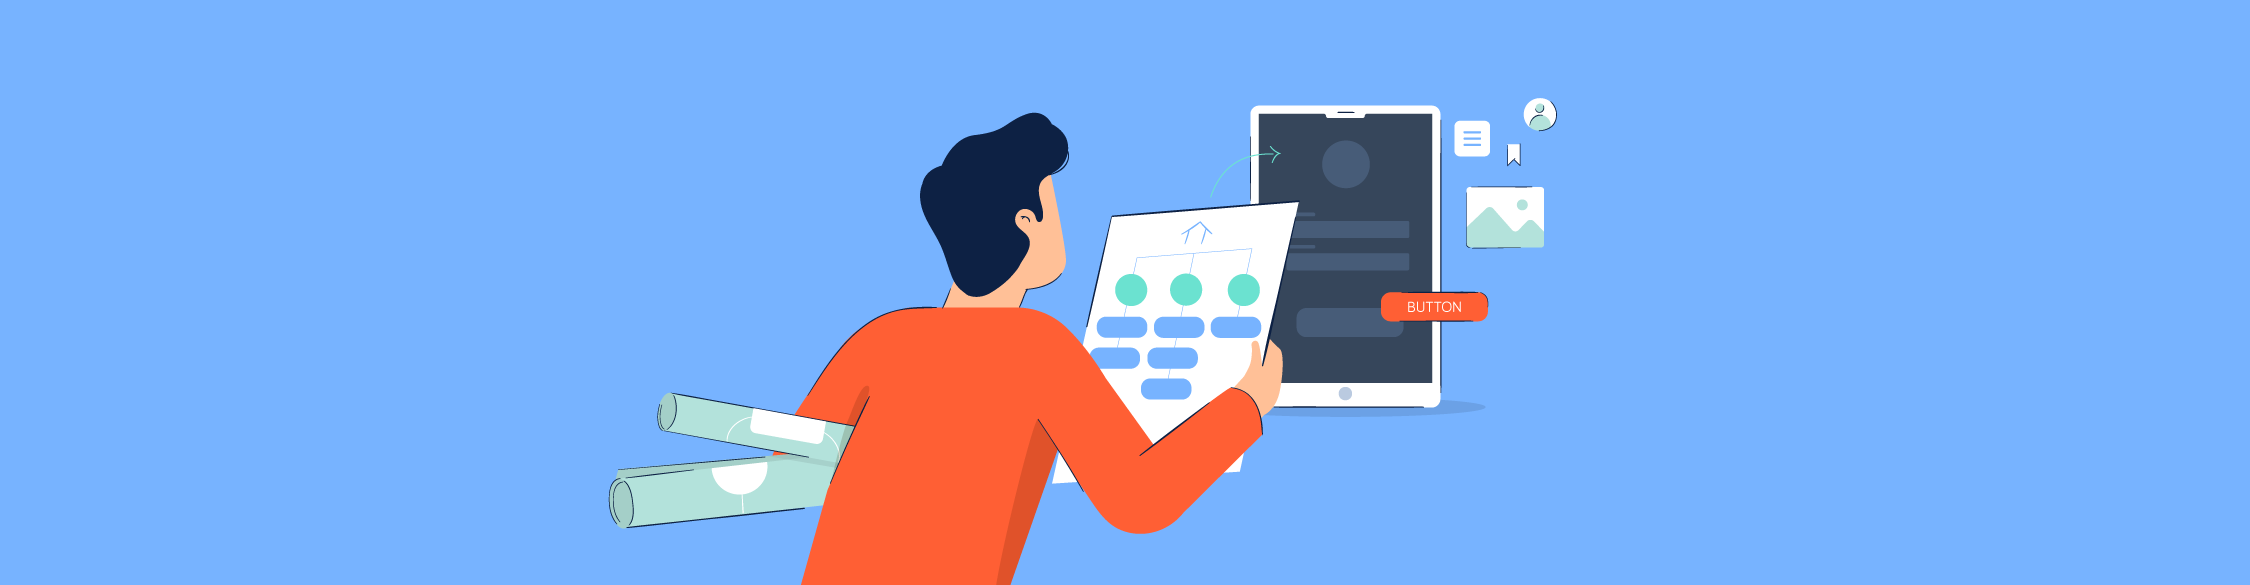 An illustration of a person looking at a wireframe to design an app.